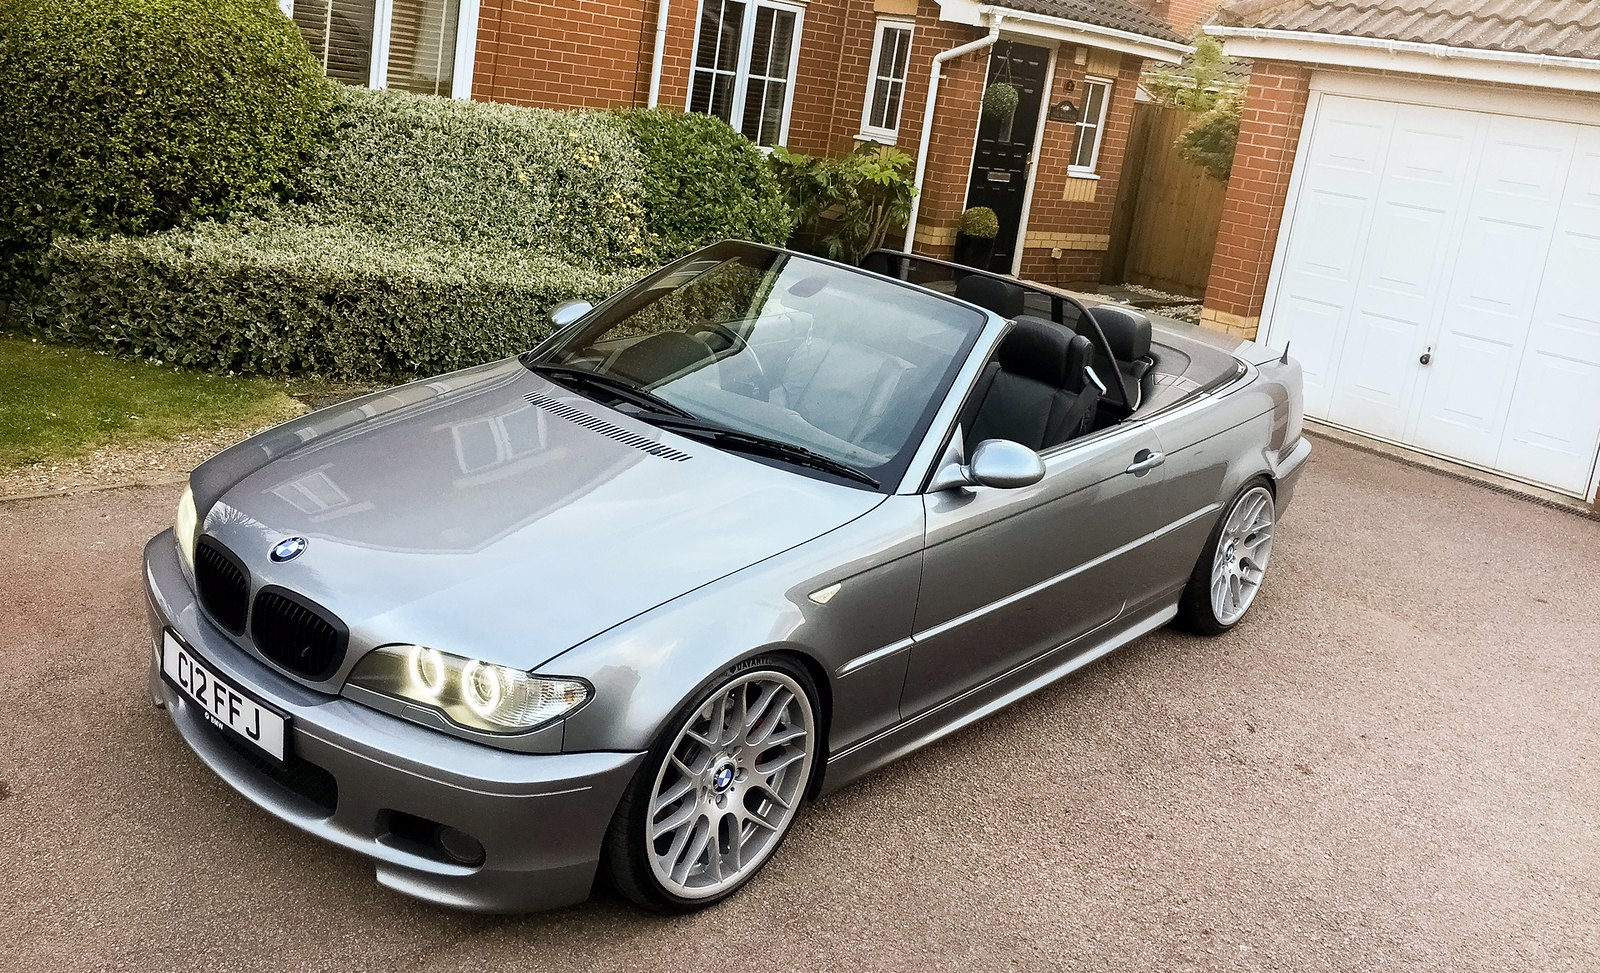 bmw e46 330 msport convertible page 2 readers 39 cars pistonheads. Black Bedroom Furniture Sets. Home Design Ideas